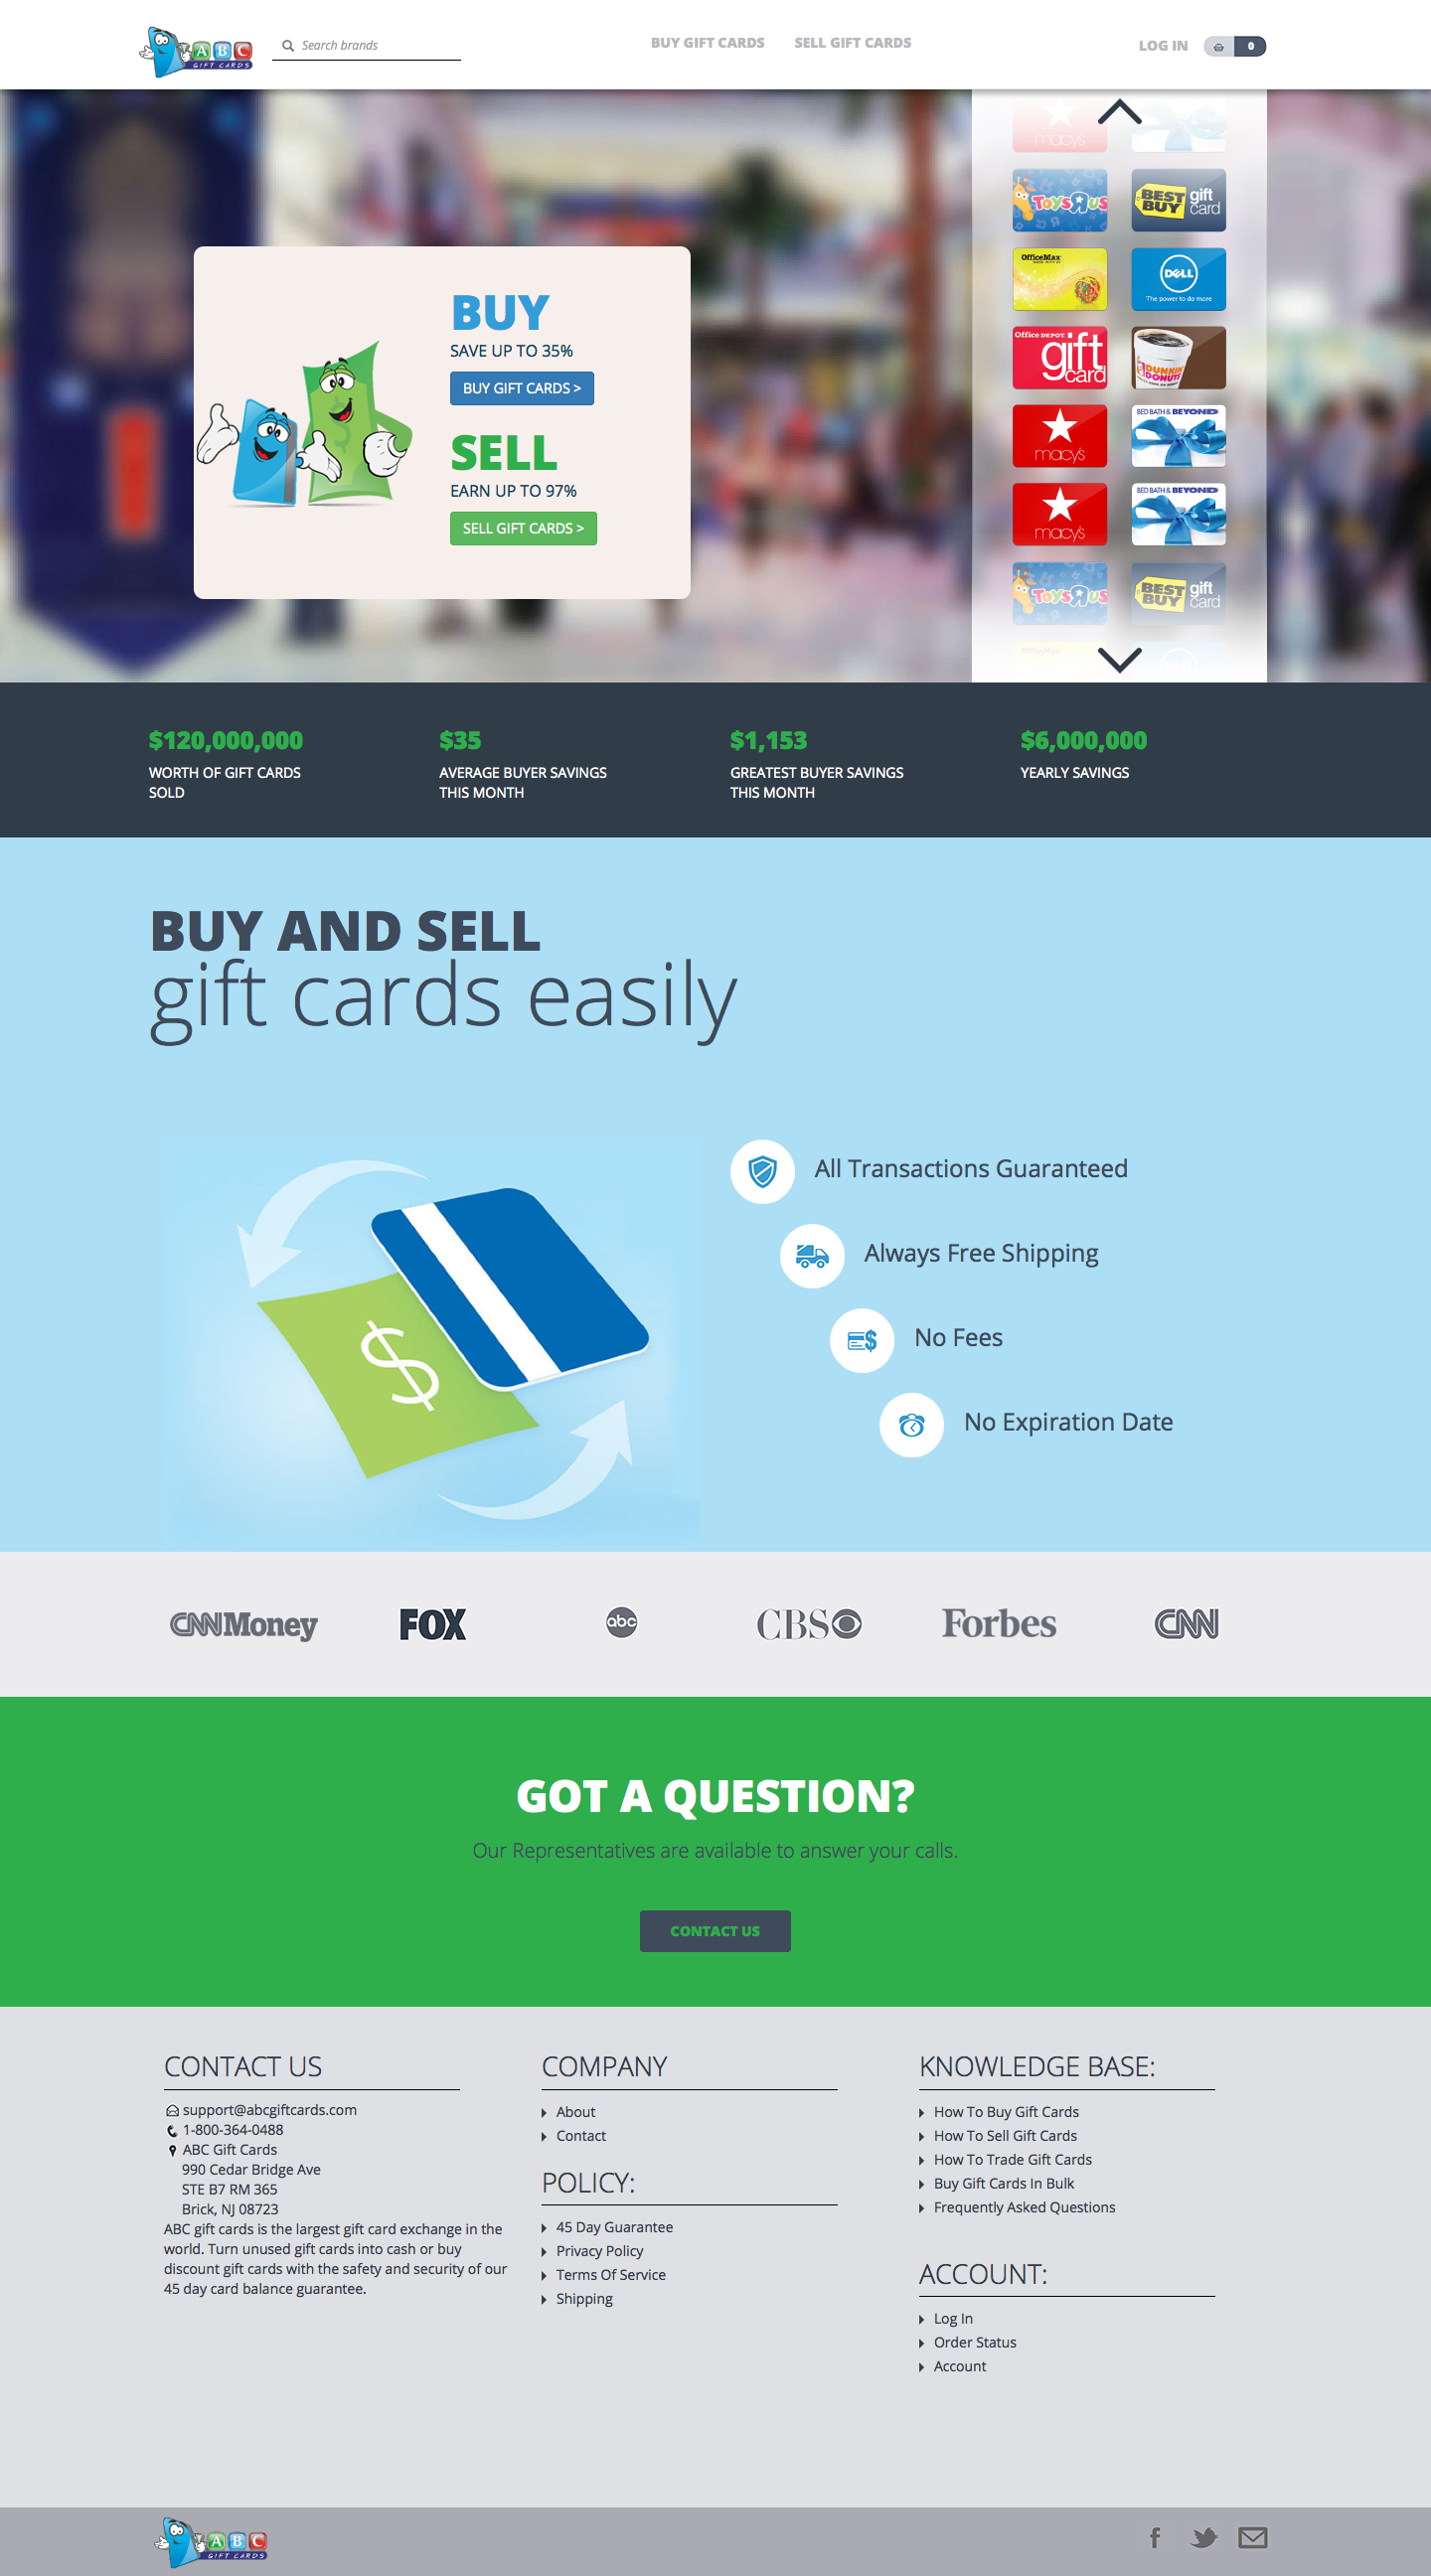 ABCgiftcards